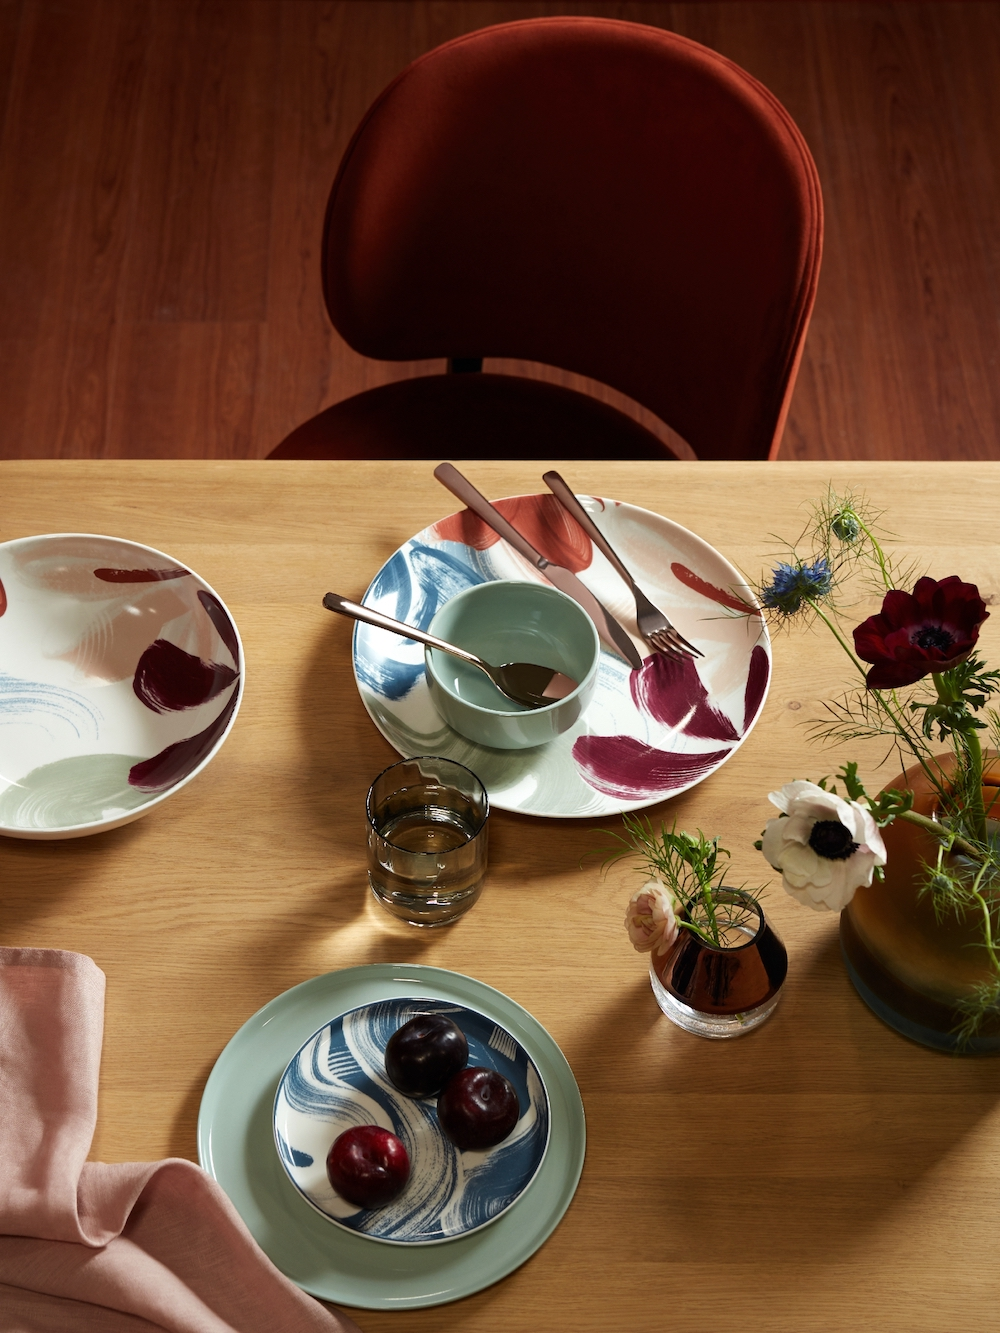 John Lewis & Partners Santino 8-10 Seater Extending Dining Table, Solid Oak, £899; Design Project By John Lewis No.203 Upholstered Side Chair, £299; Broste Copenhagen Hune Cutlery set, Rose Gold, 16 piece, £175; Mezzo Navy Napkin Set of 4, £12; 3 Tone Glass Multi Small, £40; John Lewis & Partners Impressions China, £7 Side plate green, £7; John Lewis & Partners Impressions China Platter multi, £18; John Lewis & Partners L Impressions China Serve bowl multi, £22; John Lewis & Partners Impressions China Dinner plate Green, £7